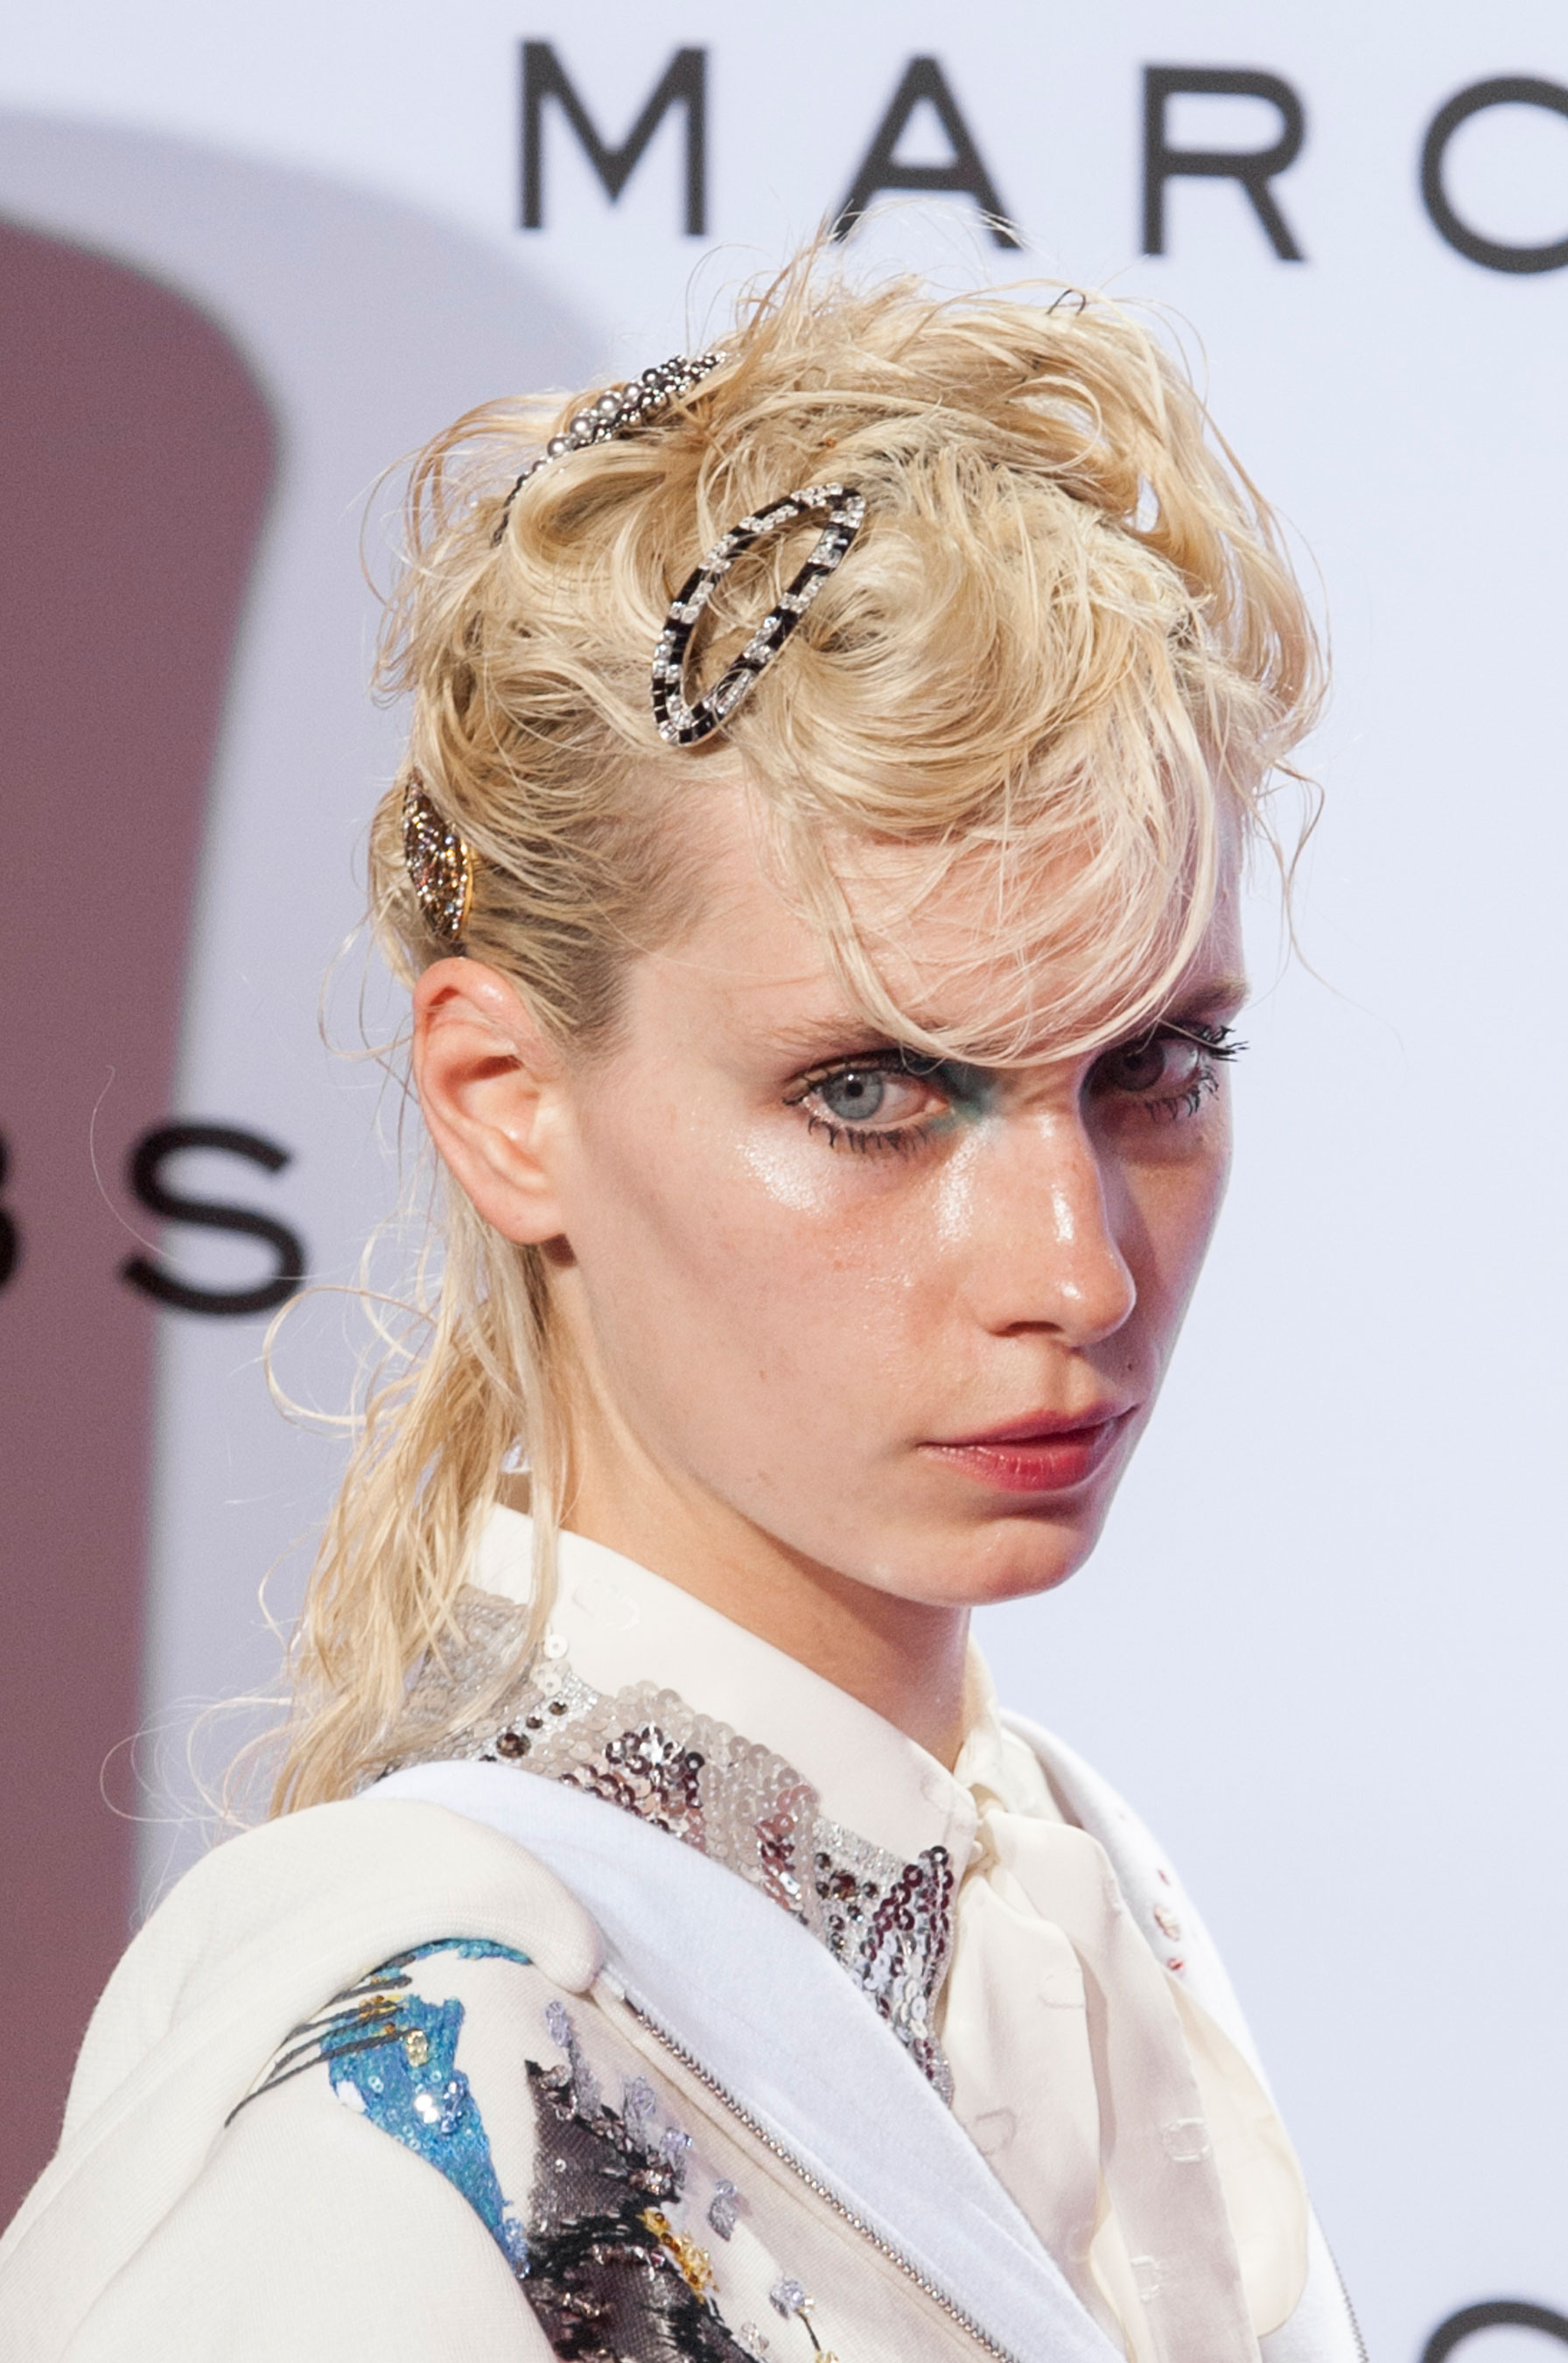 marc-jacobs-spring-2016-runway-beauty-fashion-show-the-impression-50